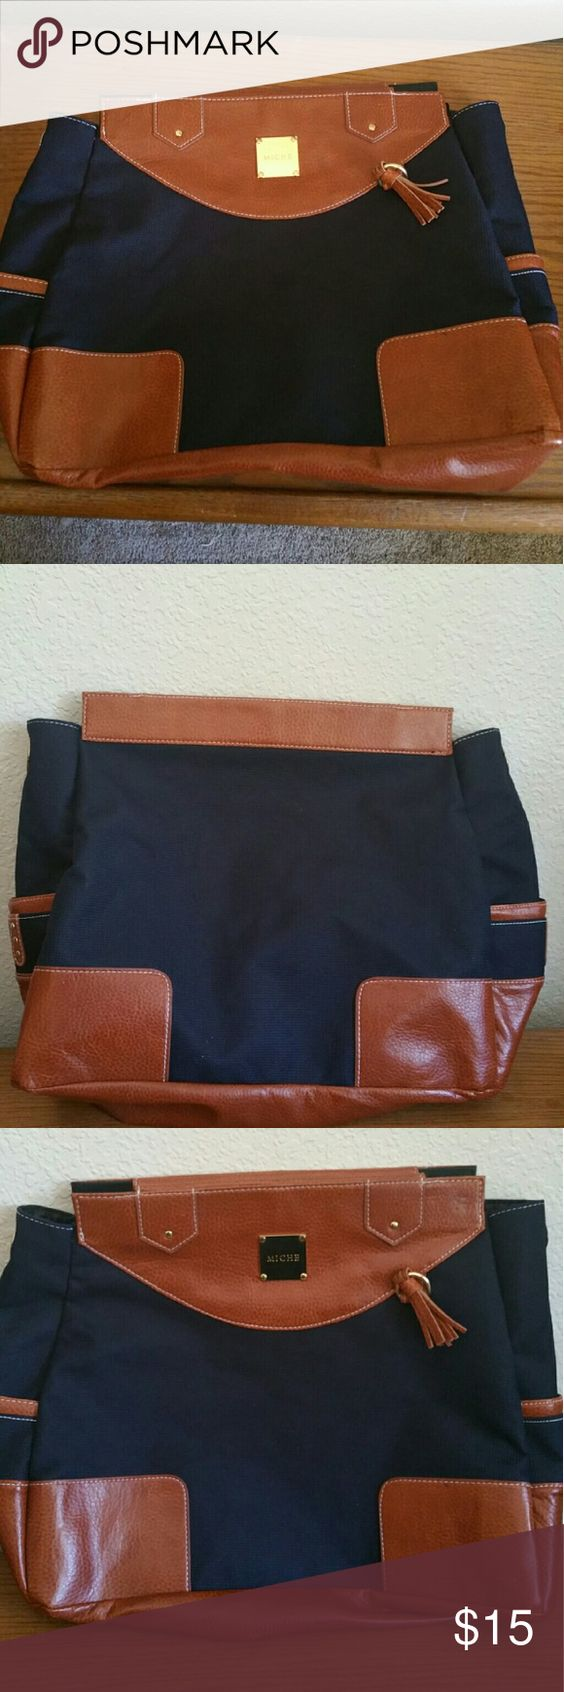 Miche Prima purse- shell only!! Black and brown Miche shell. Does not include the base and straps.. Used once. Very clean and great shape. Bags Totes